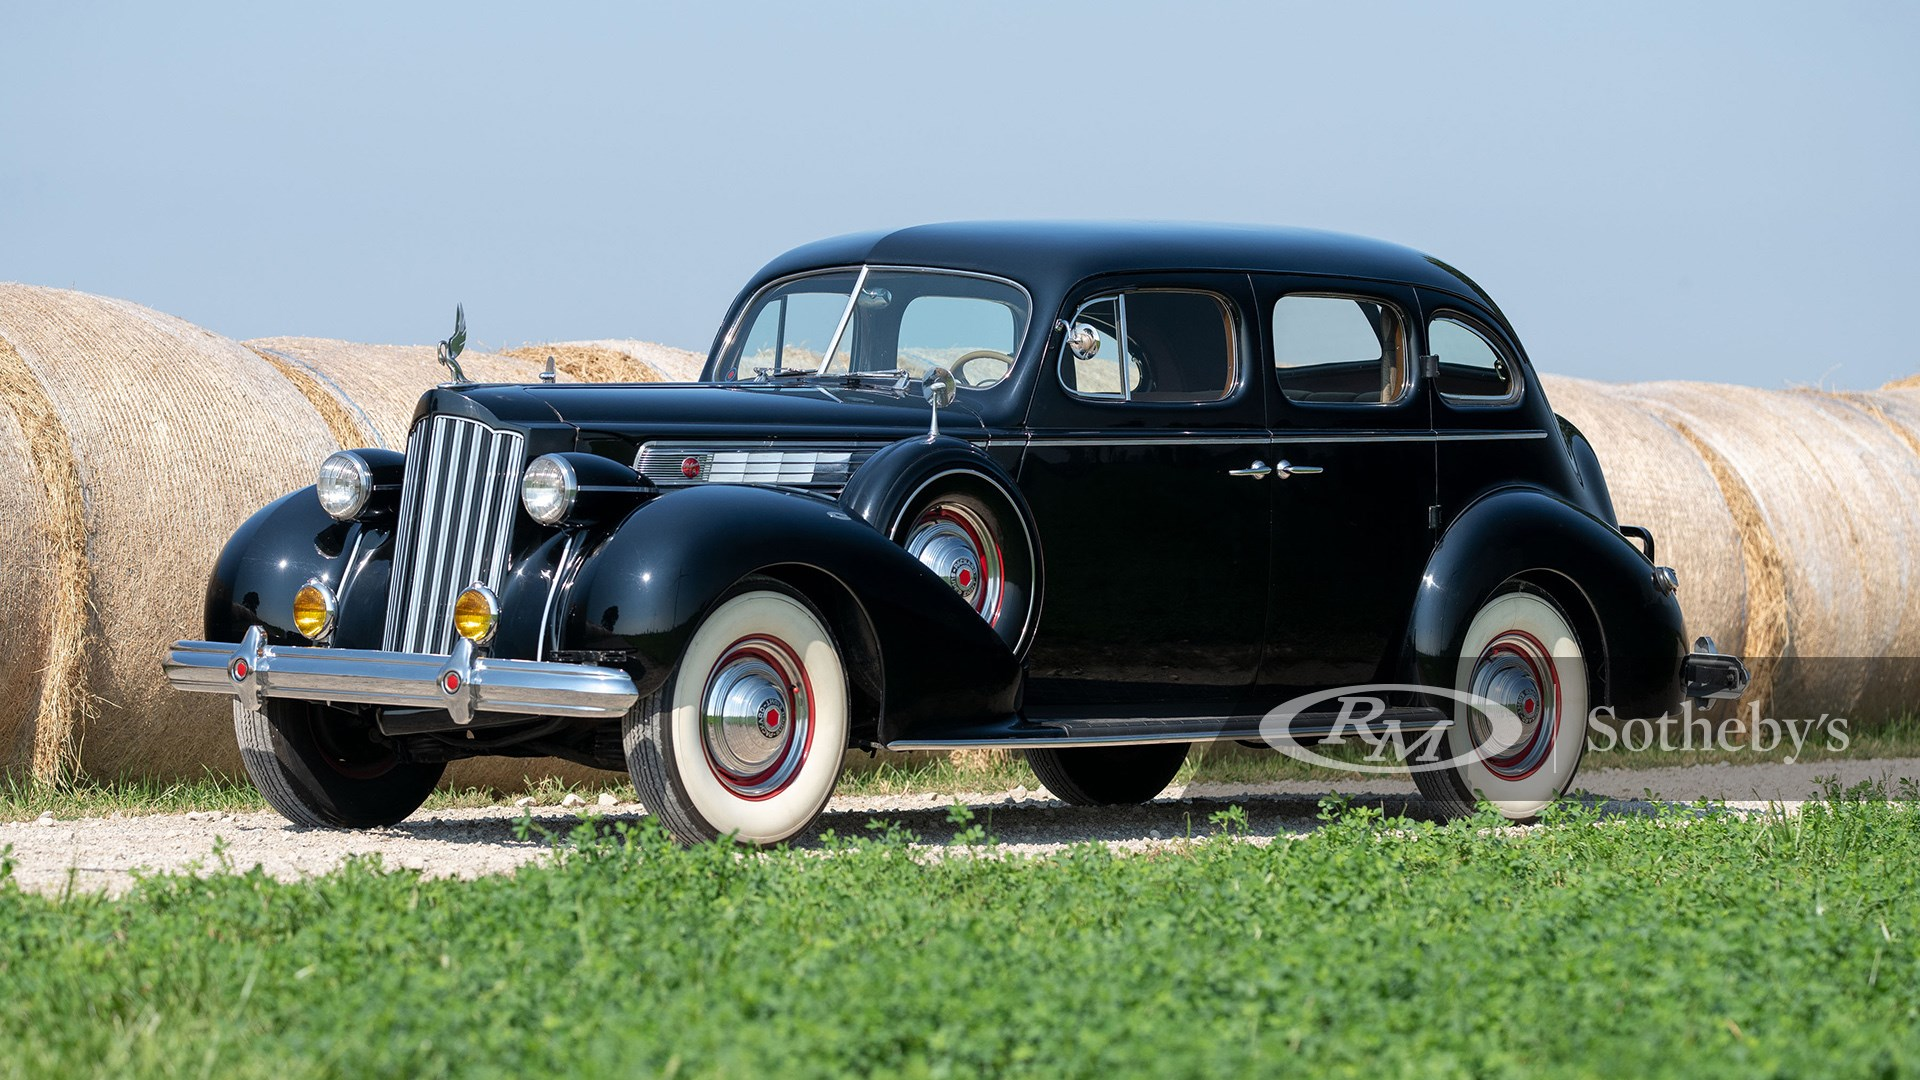 1939 Packard Super Eight Touring Sedan available at RM Sotheby's Online Only Open Roads April Auction 2021